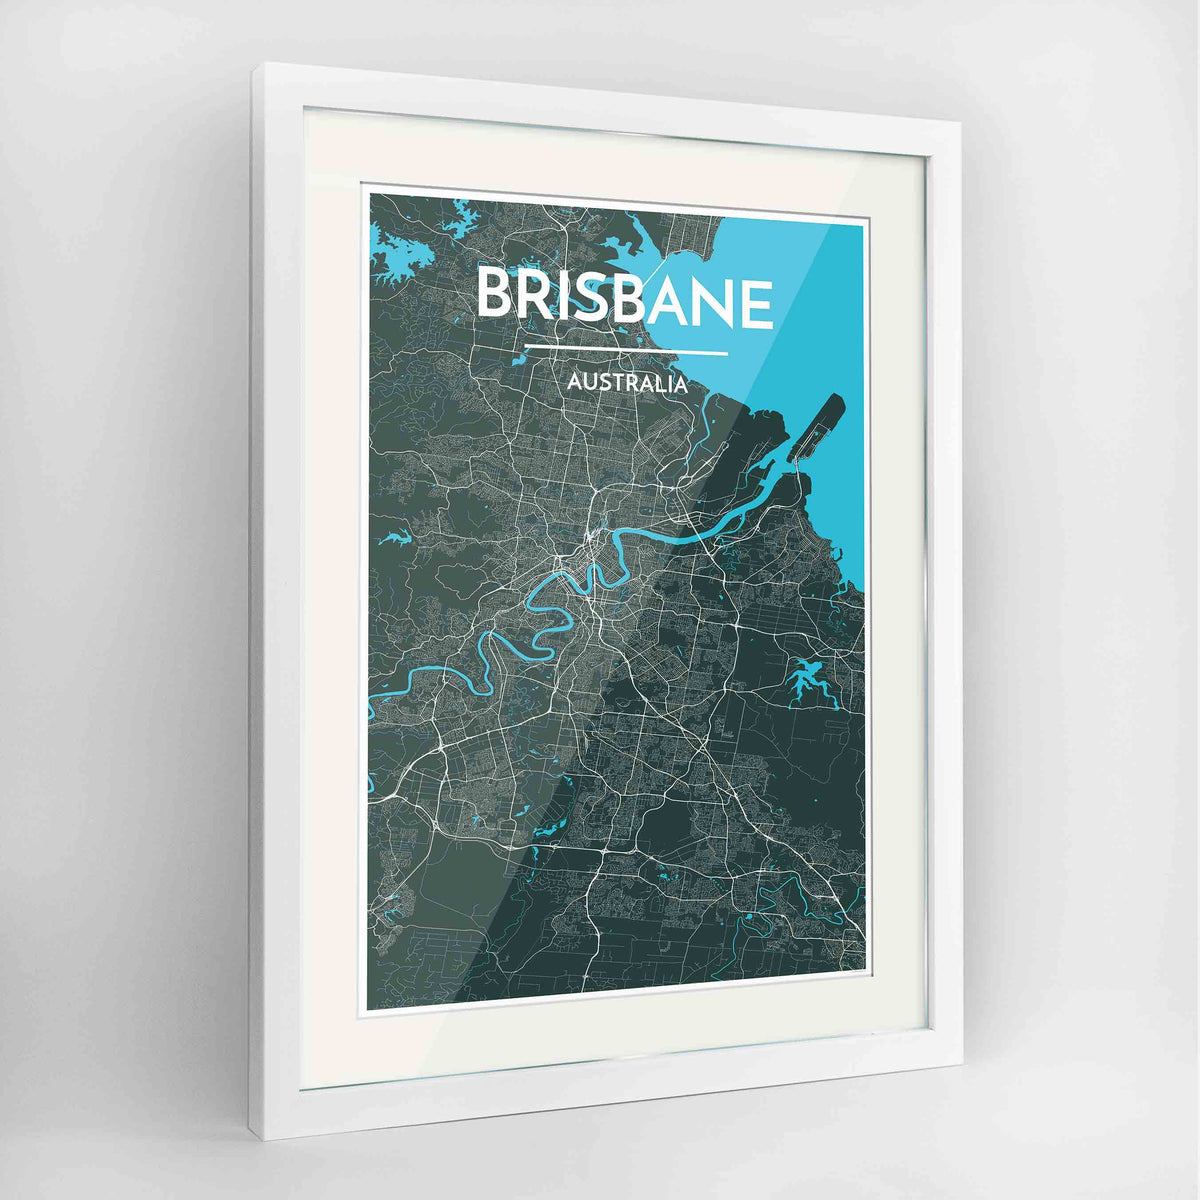 "Framed Brisbane Map Art Print 24x36"" Contemporary White frame Point Two Design Group"